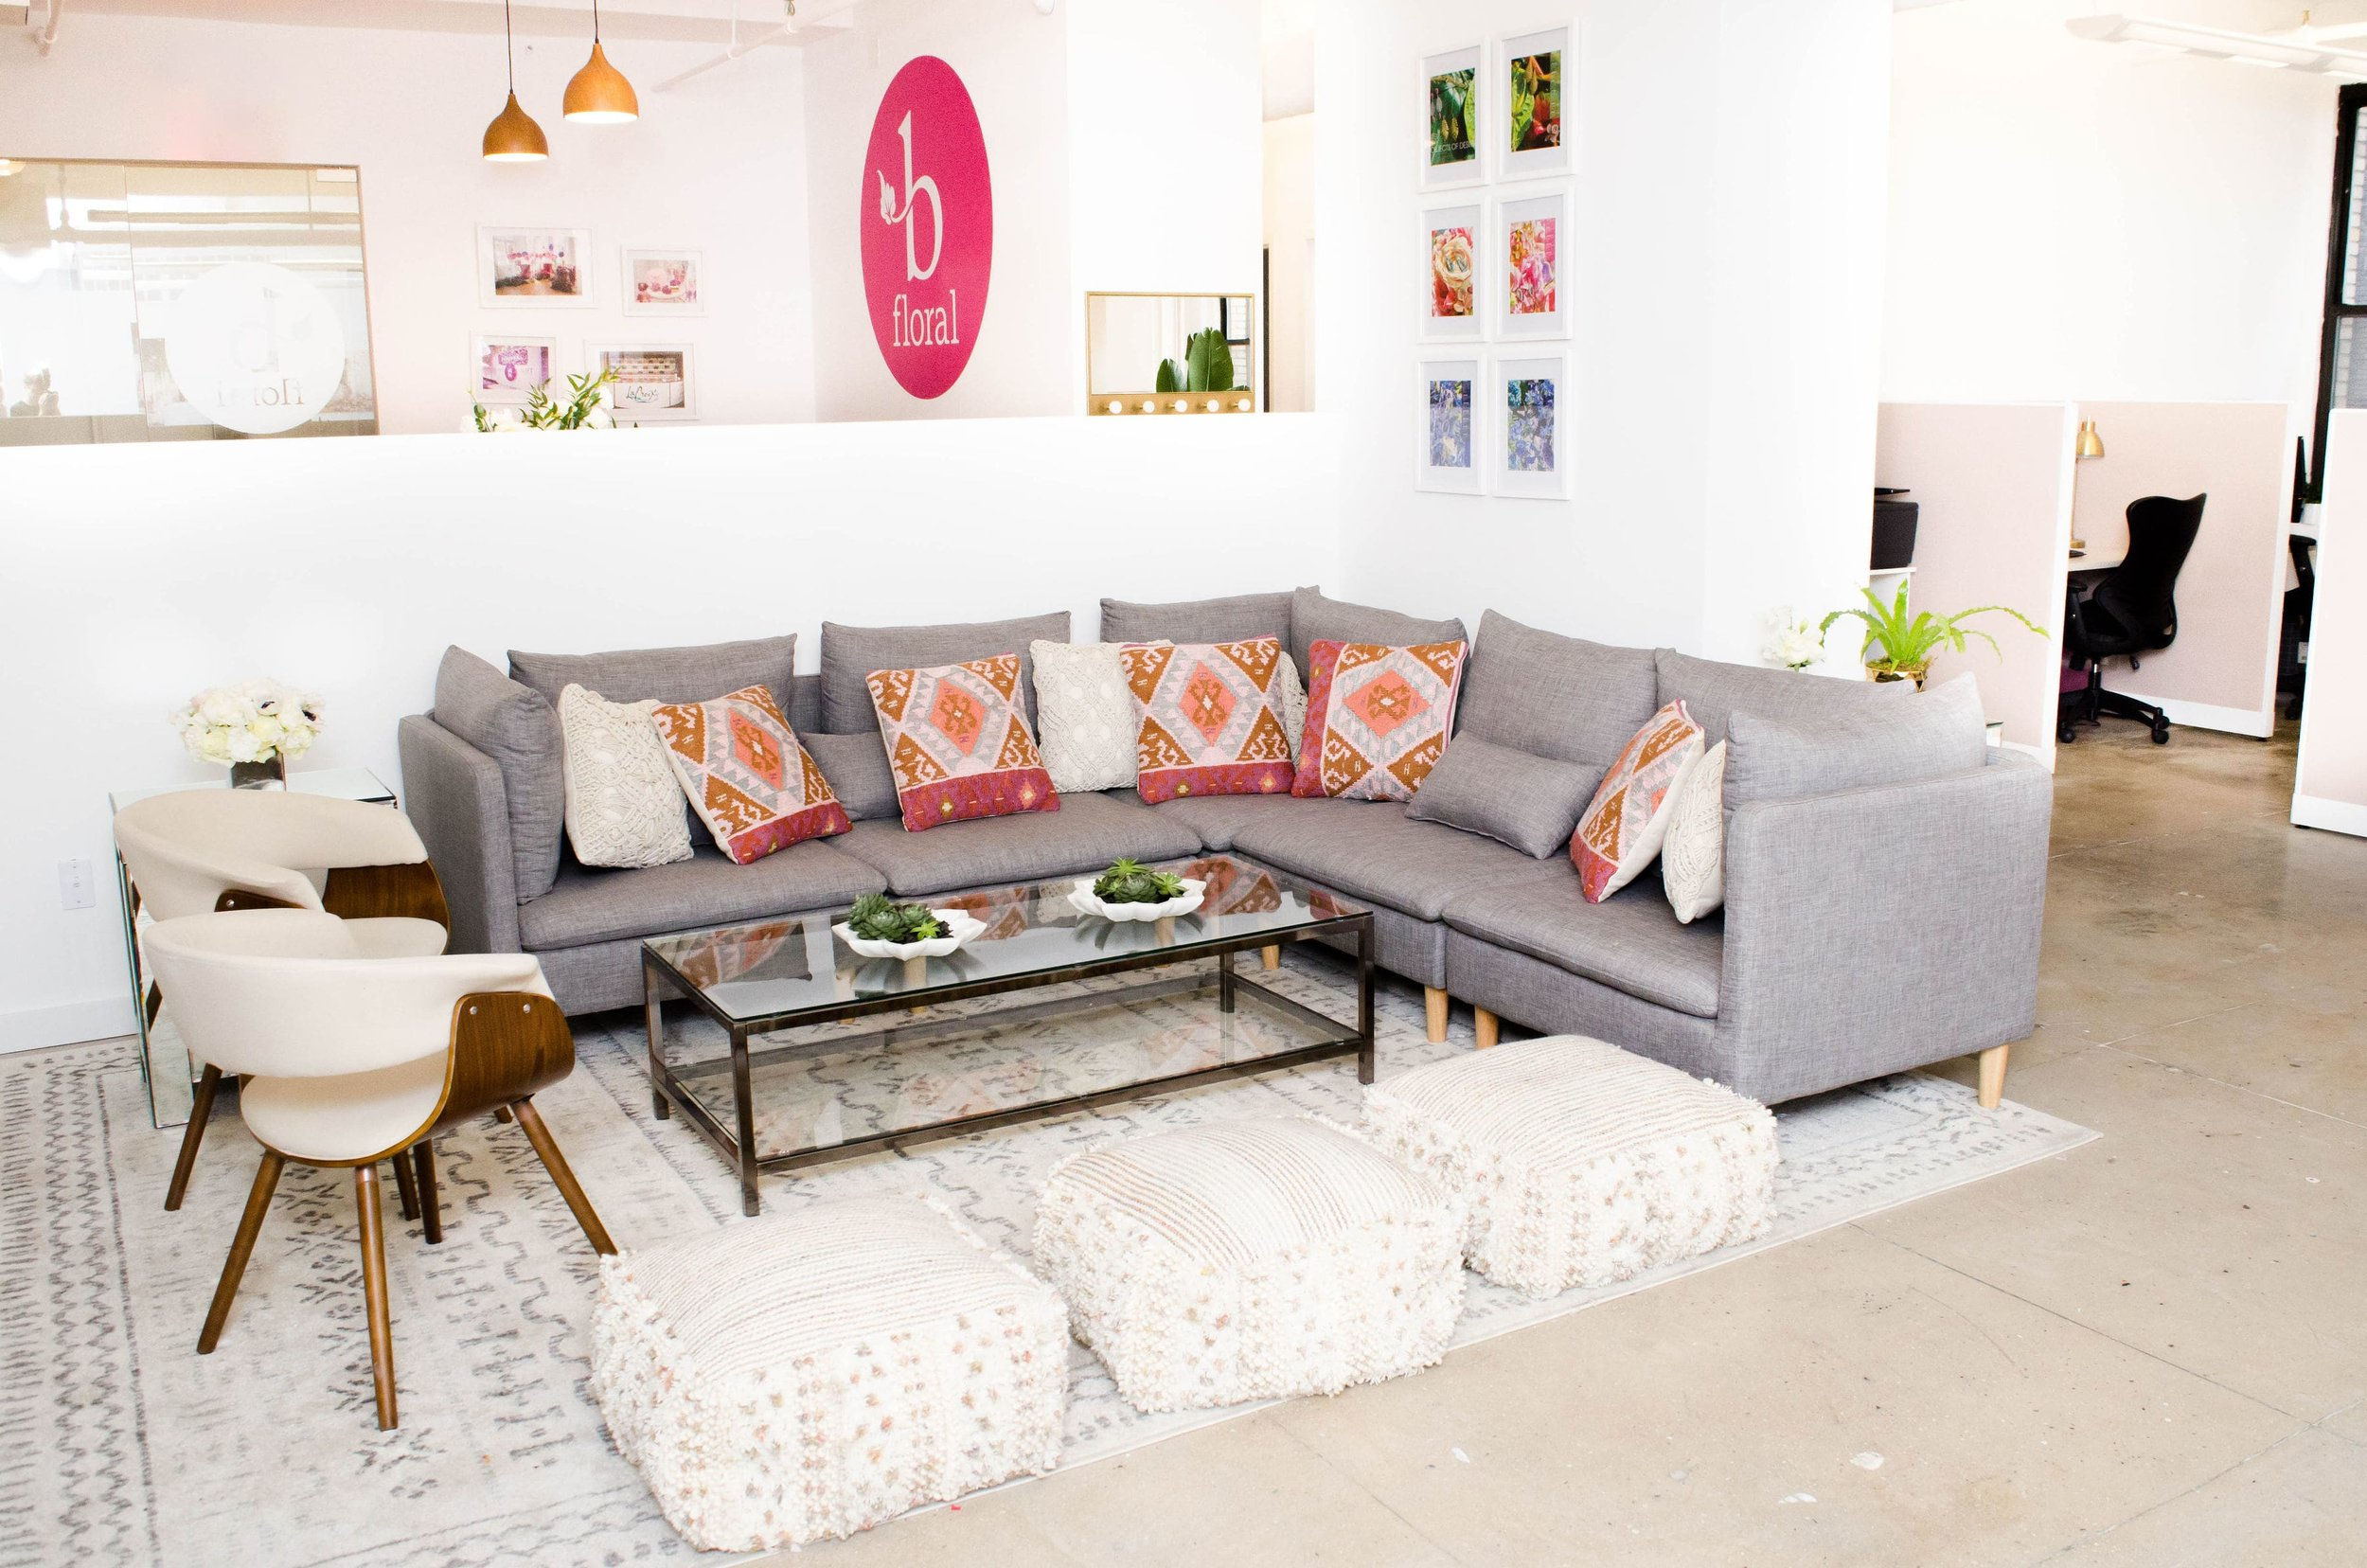 NEW - OFFICE - SPACE - MANHATTAN - COOL - OPEN - TEAM LOUNGE - B FLORAL